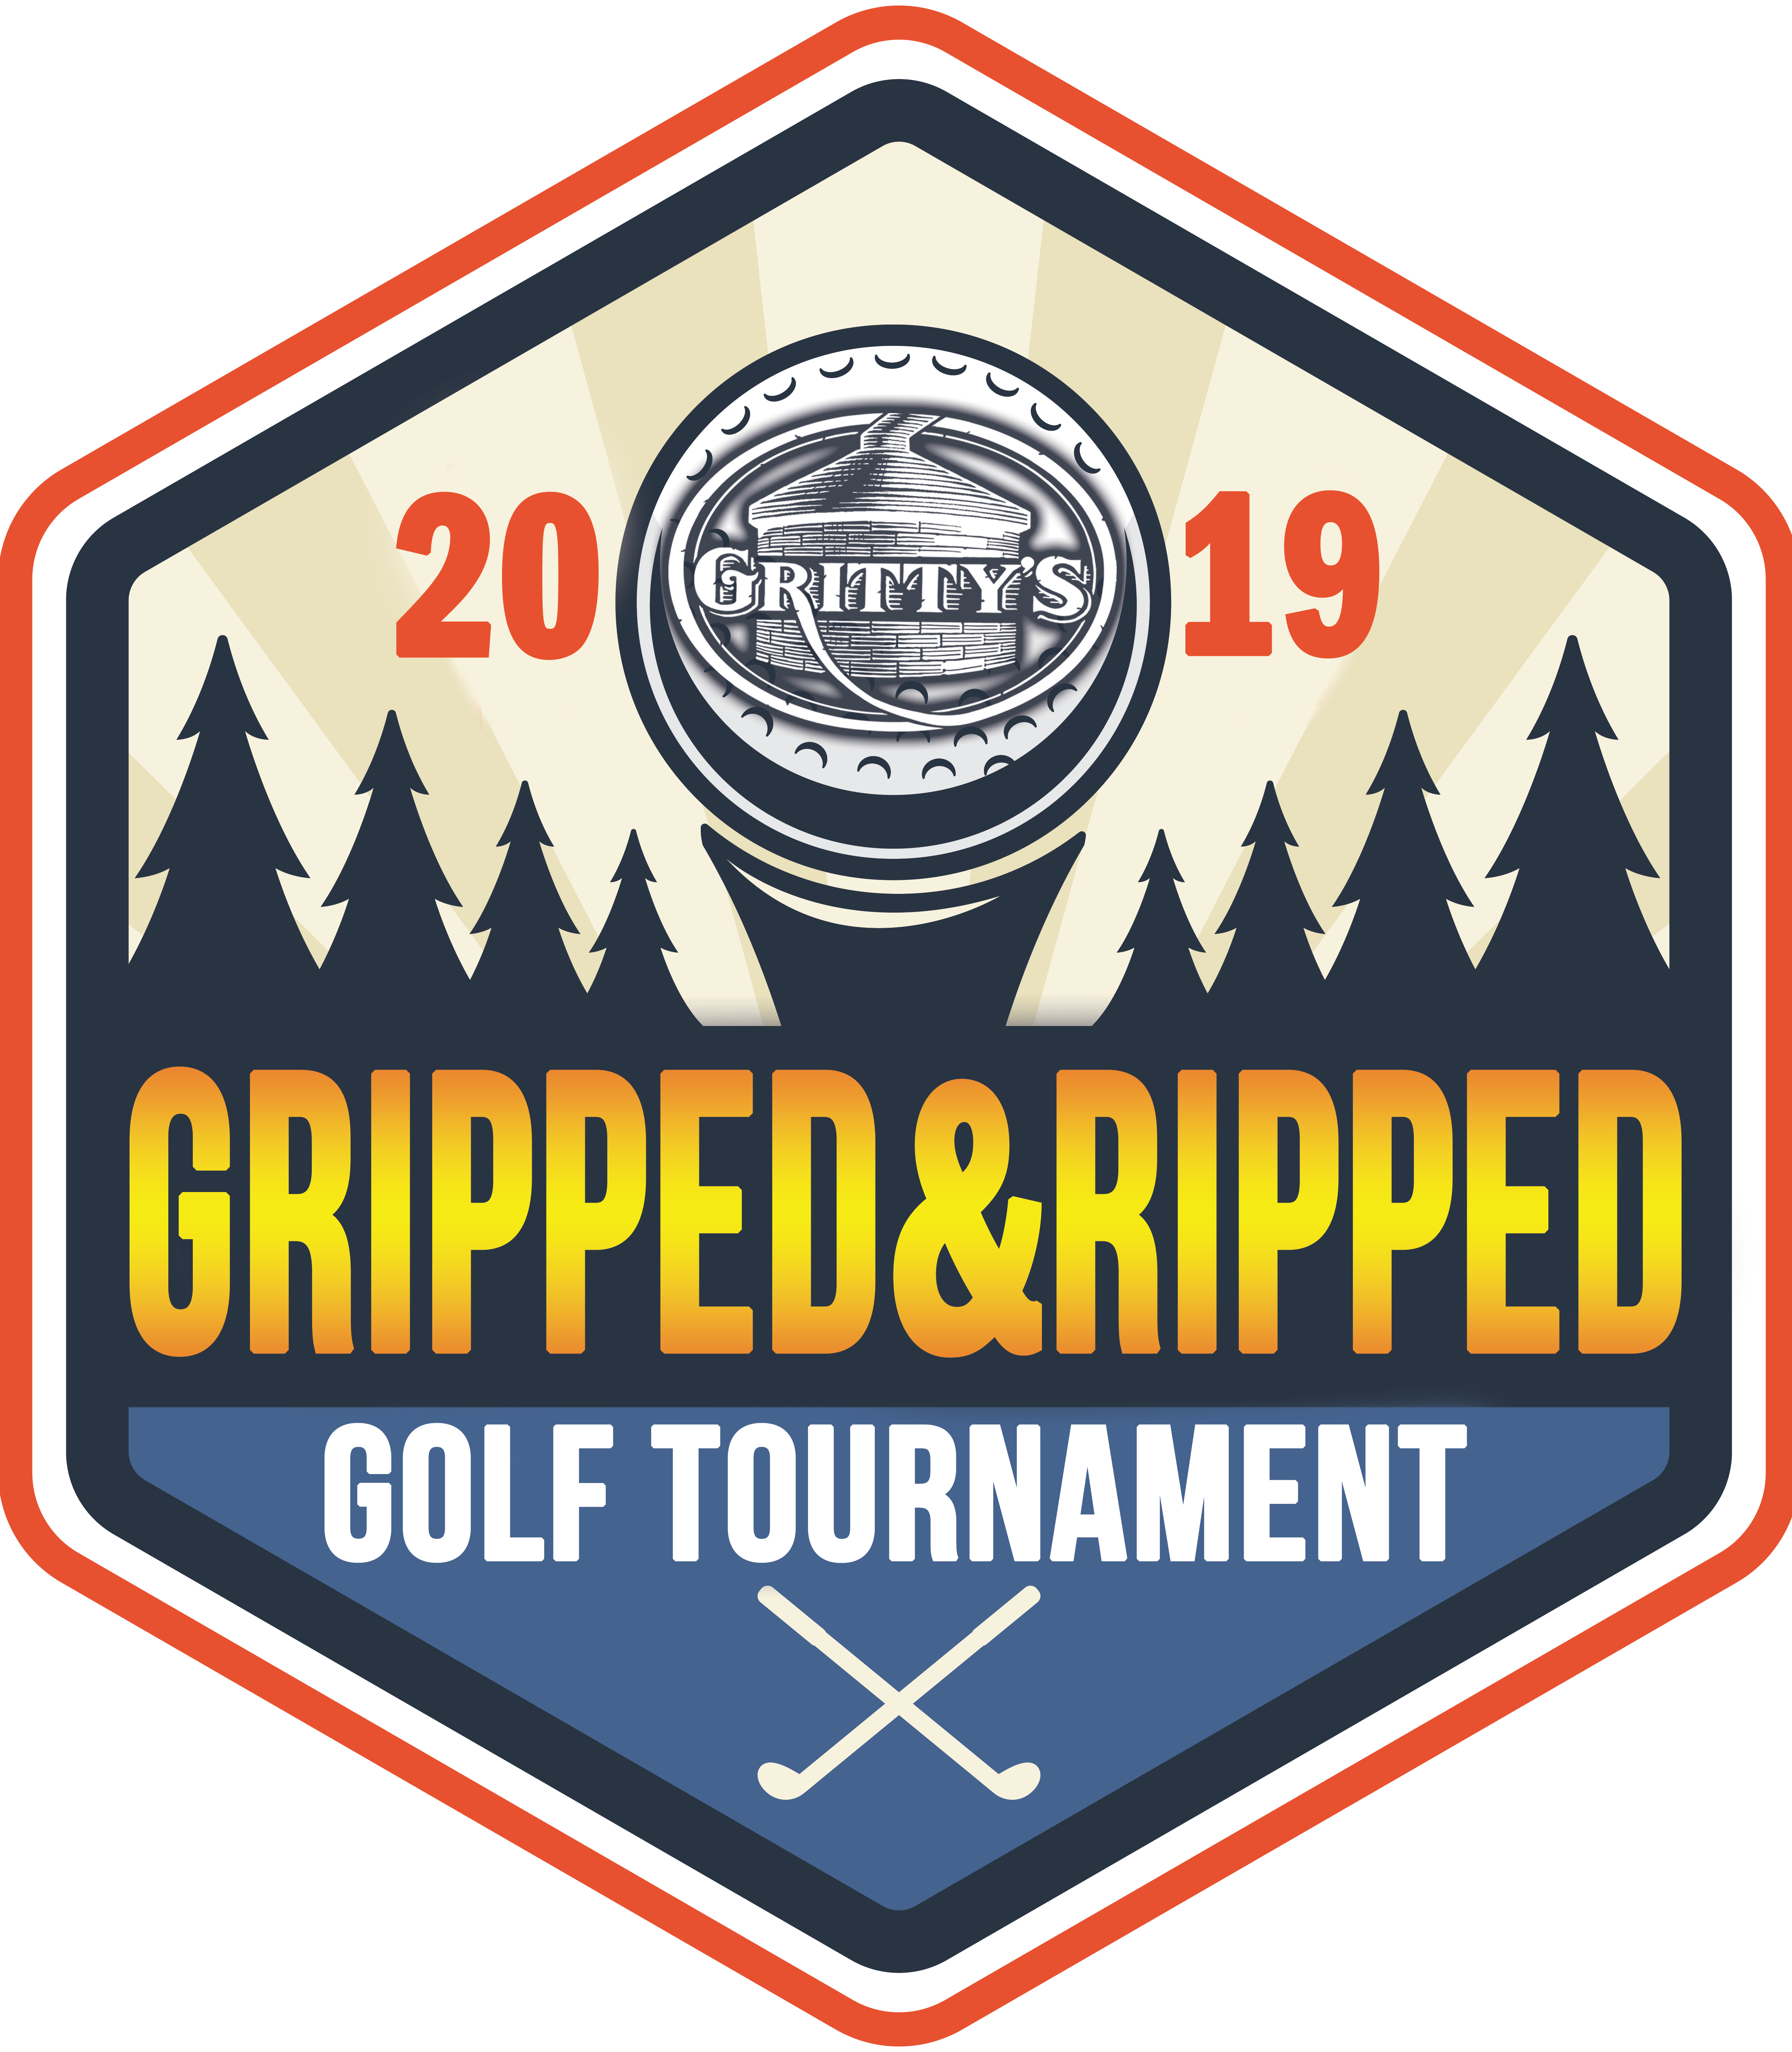 Gritty's Gripped & Ripped 2019 Golf Tournament logo